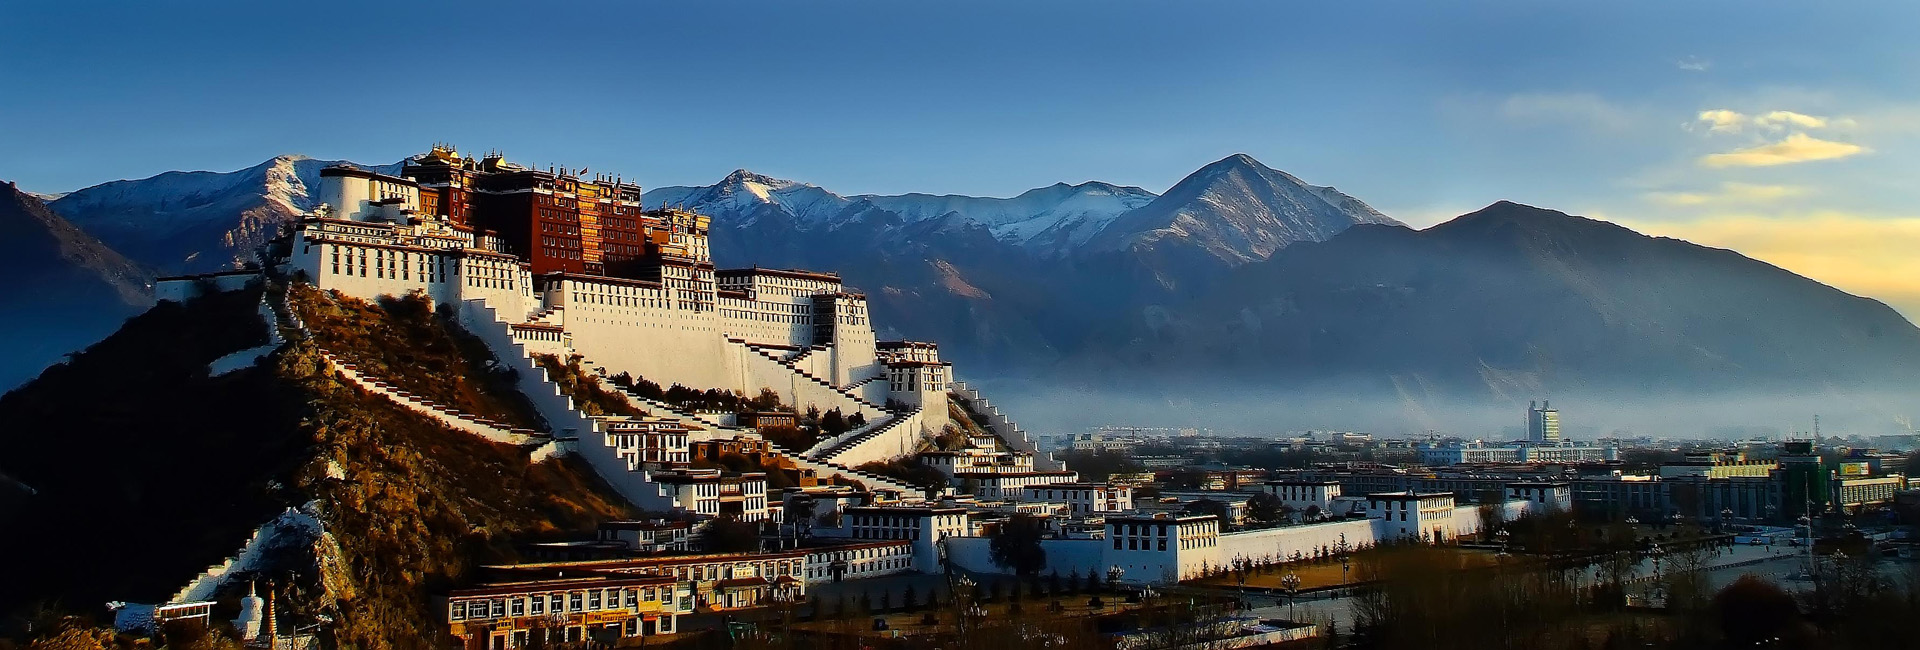 Lhasa Tour Packages Tibet Lhasa Tour Lhasa Travel 2018 2019